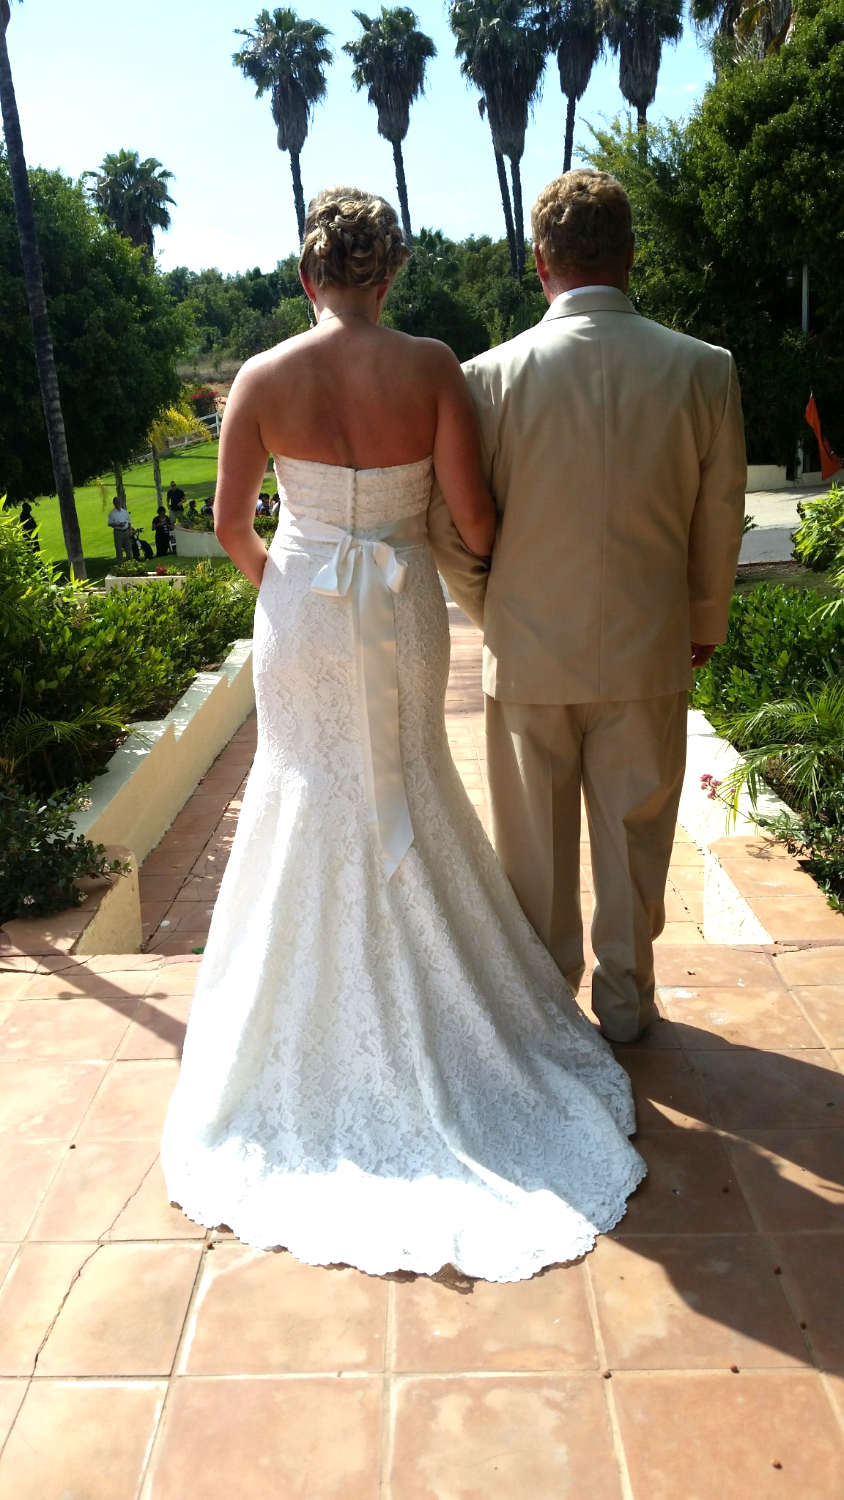 father daughter moment just before going down the aisle - Estate Weddings - In The Moment Events - S